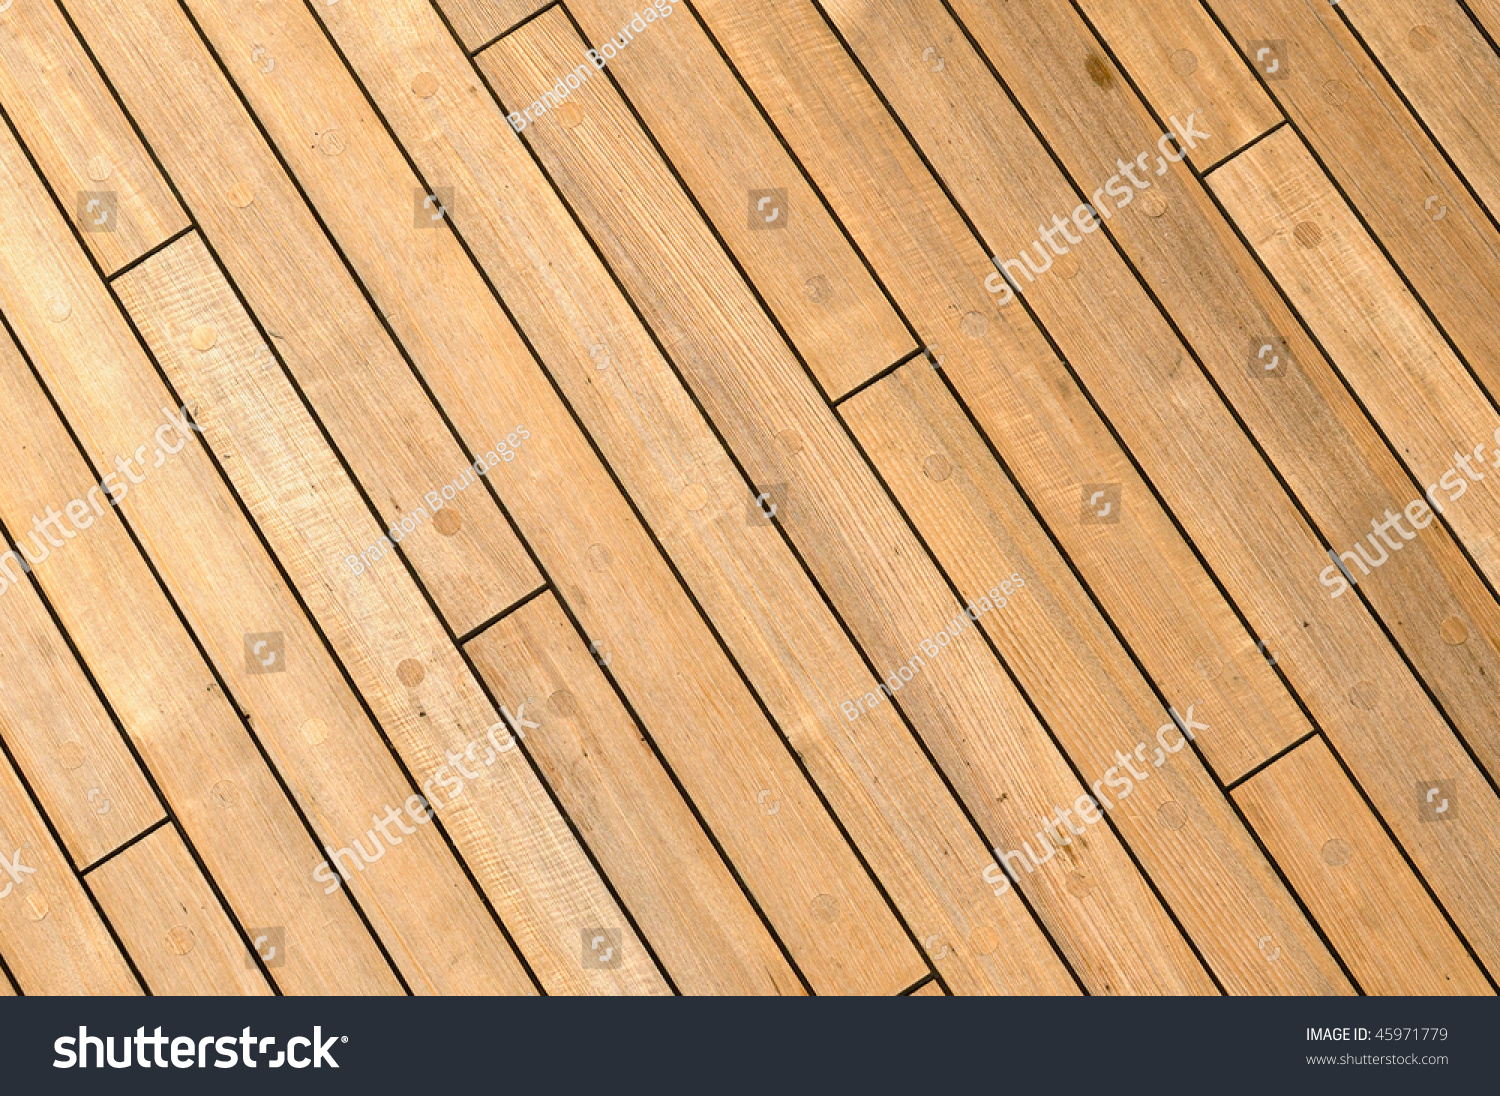 Diagonal wooden ship deck background free stock photo